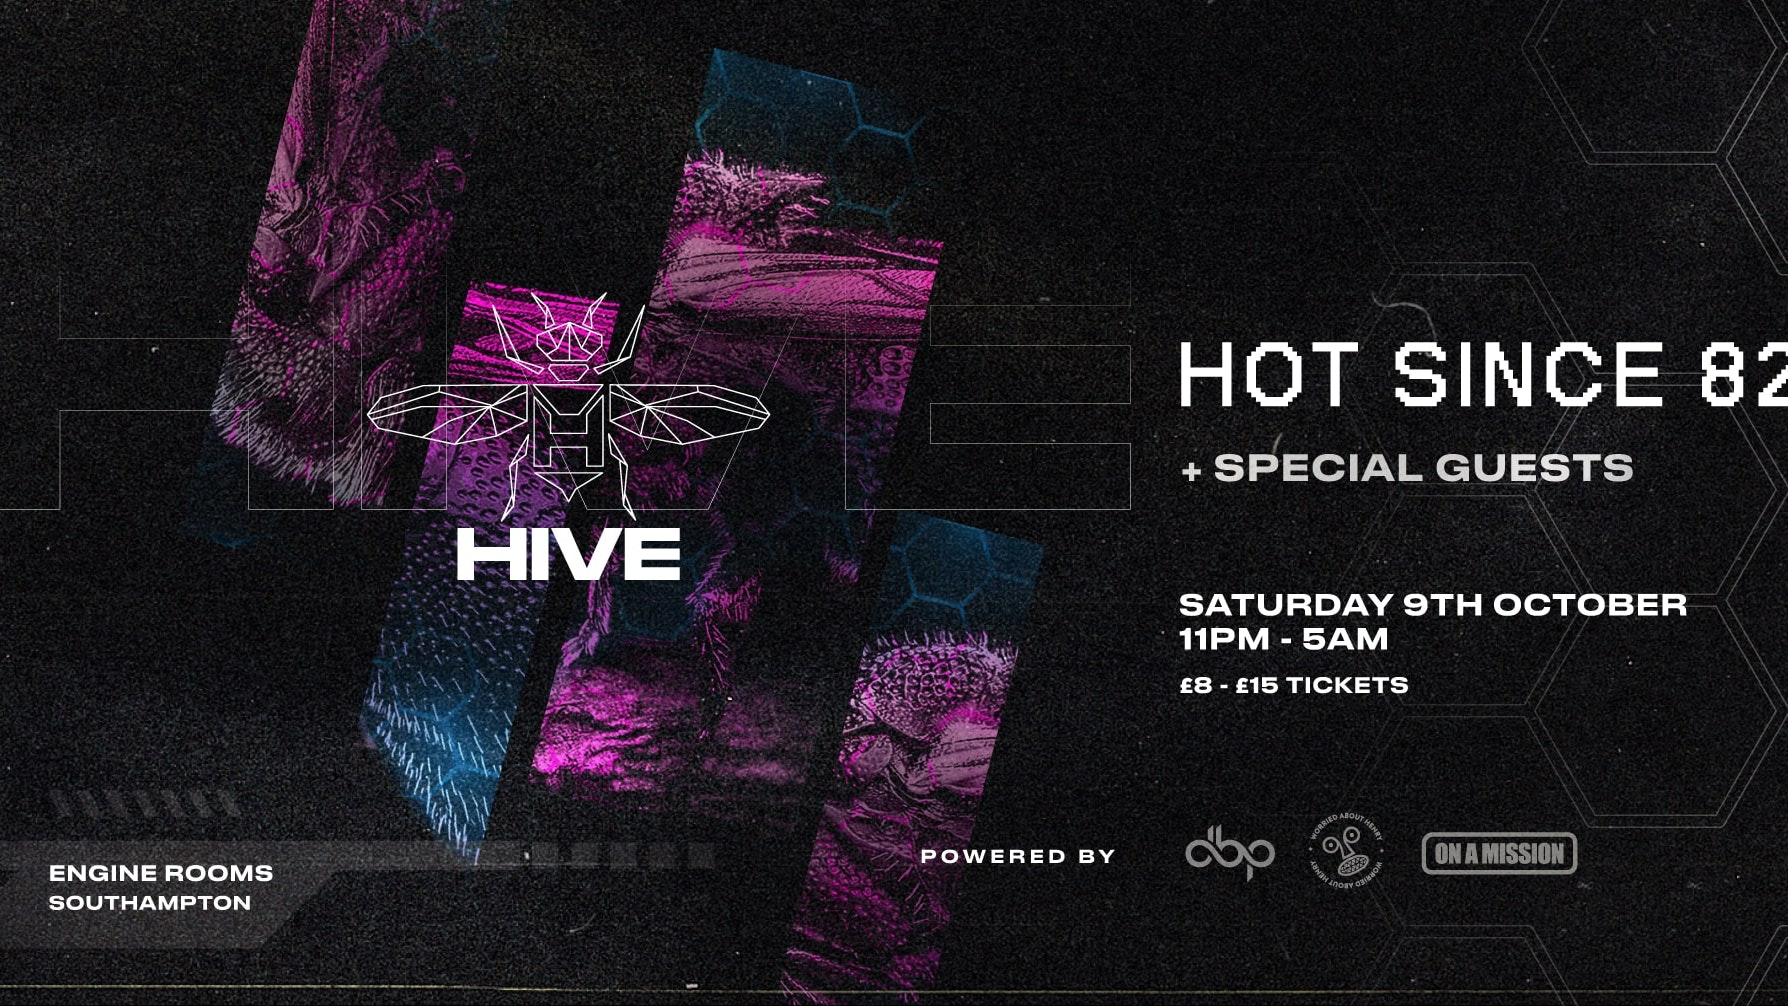 Saturday 9th Oct: Hive presents:  Hot Since 82 + Special guests